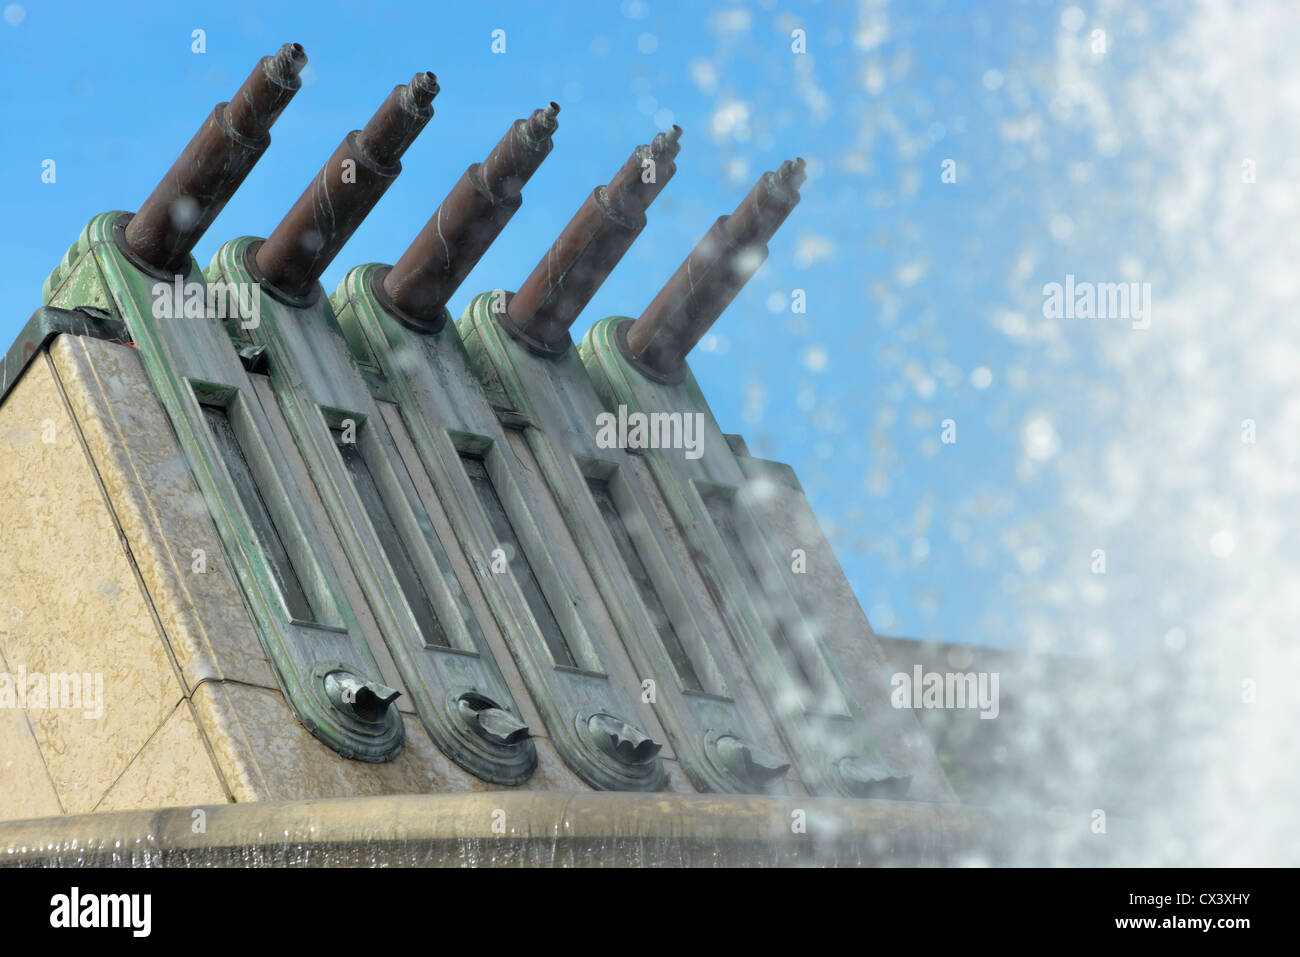 Close up of water cannons, Trocadero, Paris, France - Stock Image